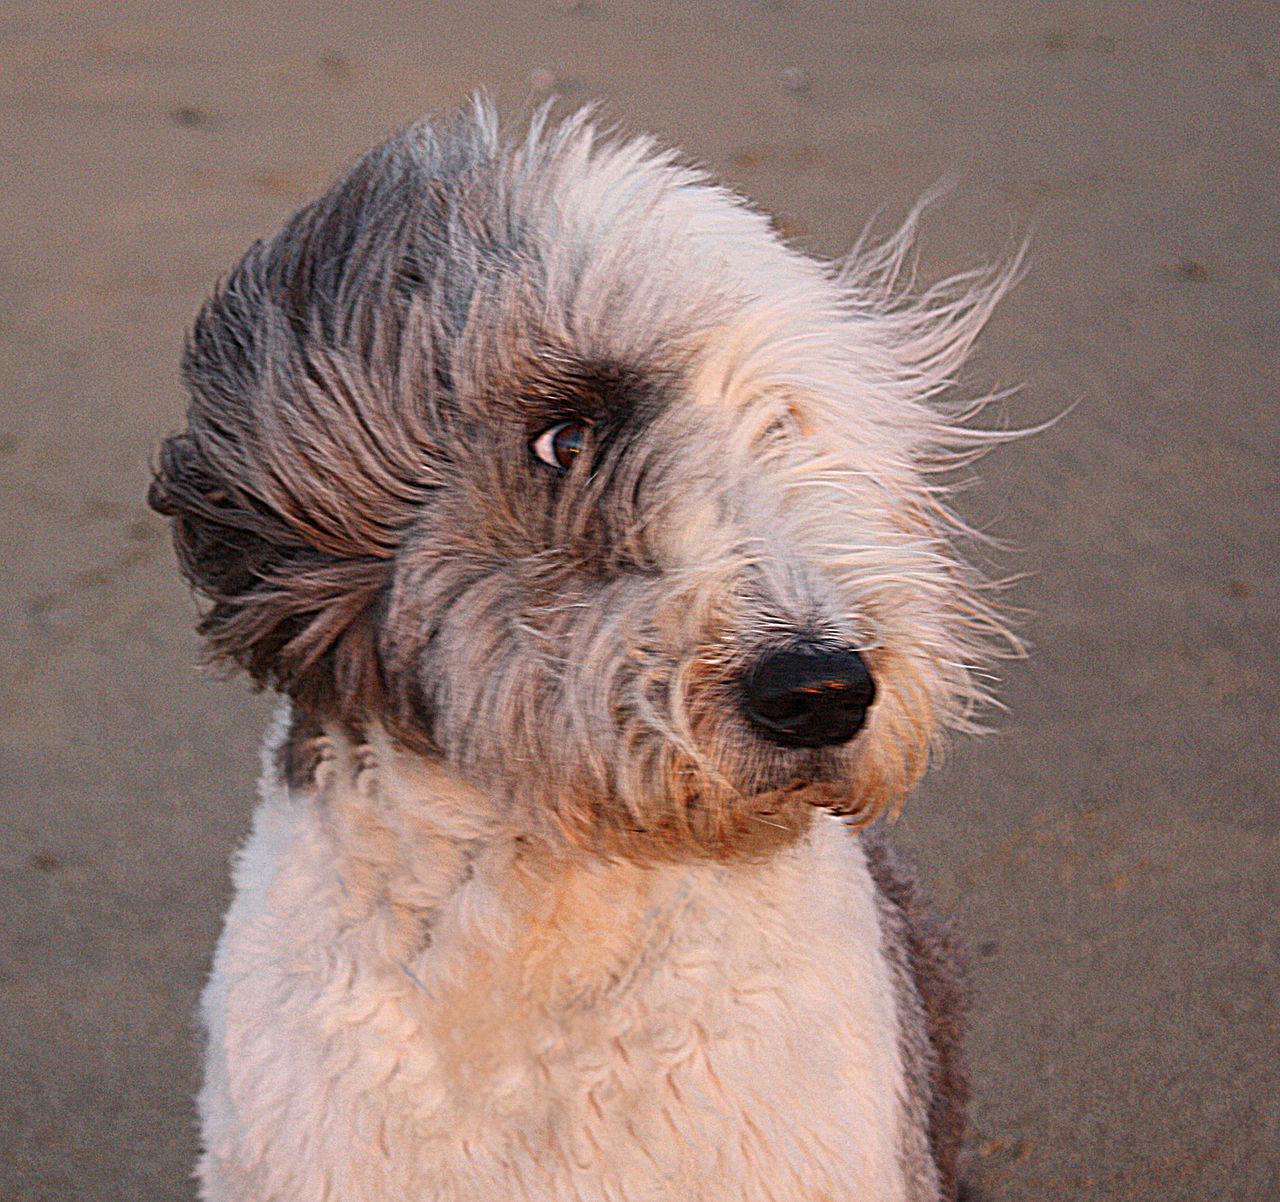 dog, pets, domestic animals, one animal, animal hair, animal themes, portrait, no people, outdoors, close-up, day, mammal